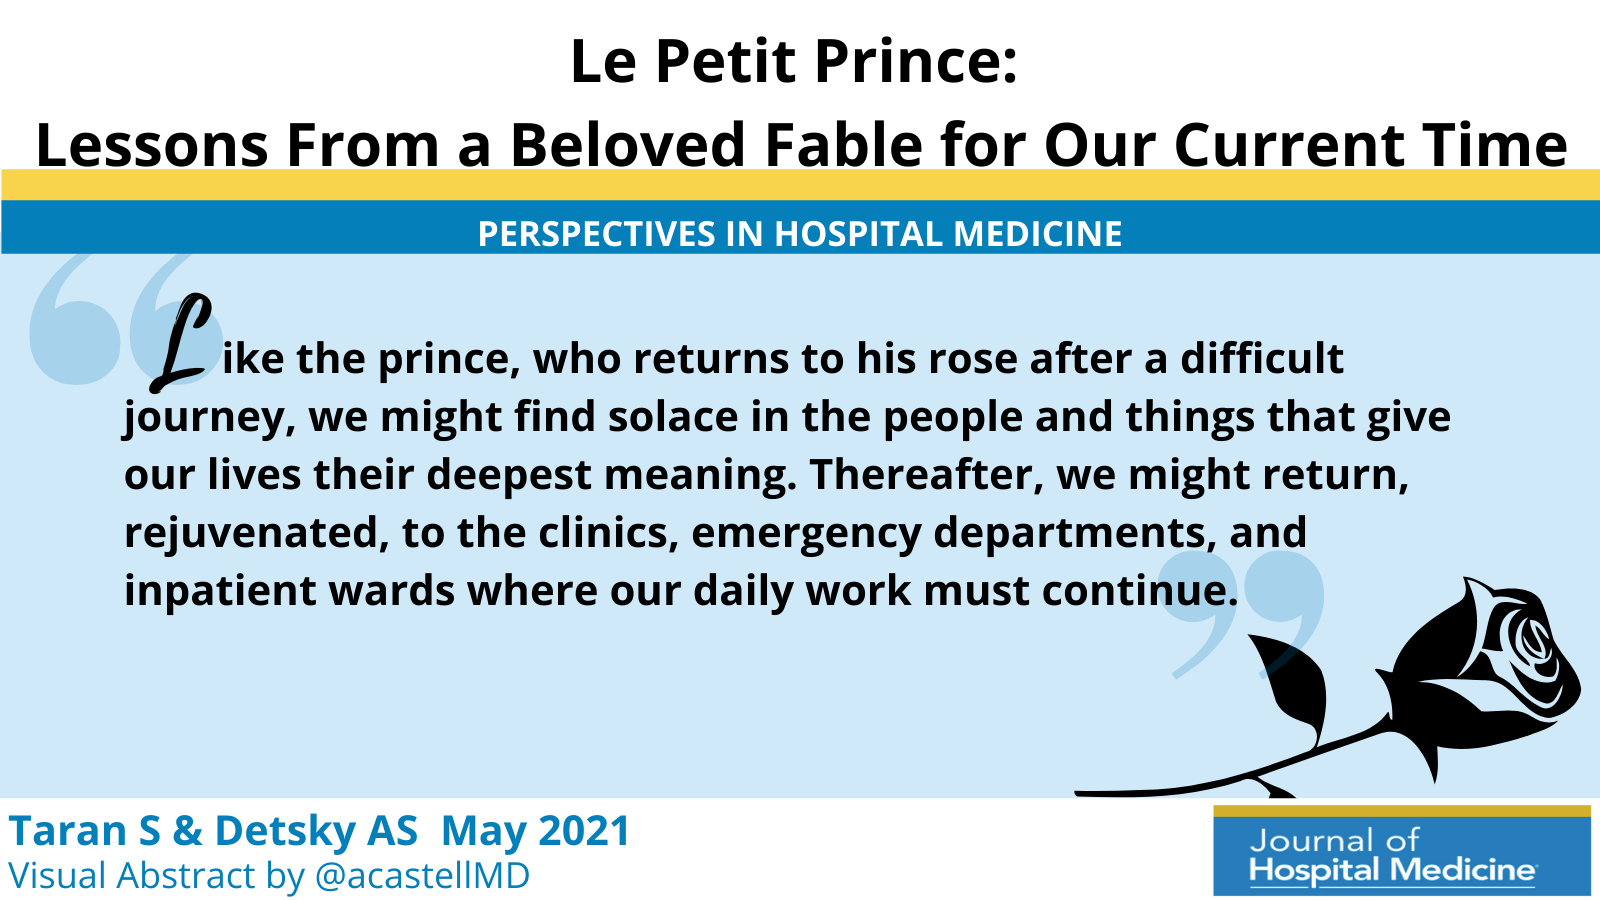 Le Petit Prince: Lessons From a Beloved Fable for Our Current Time